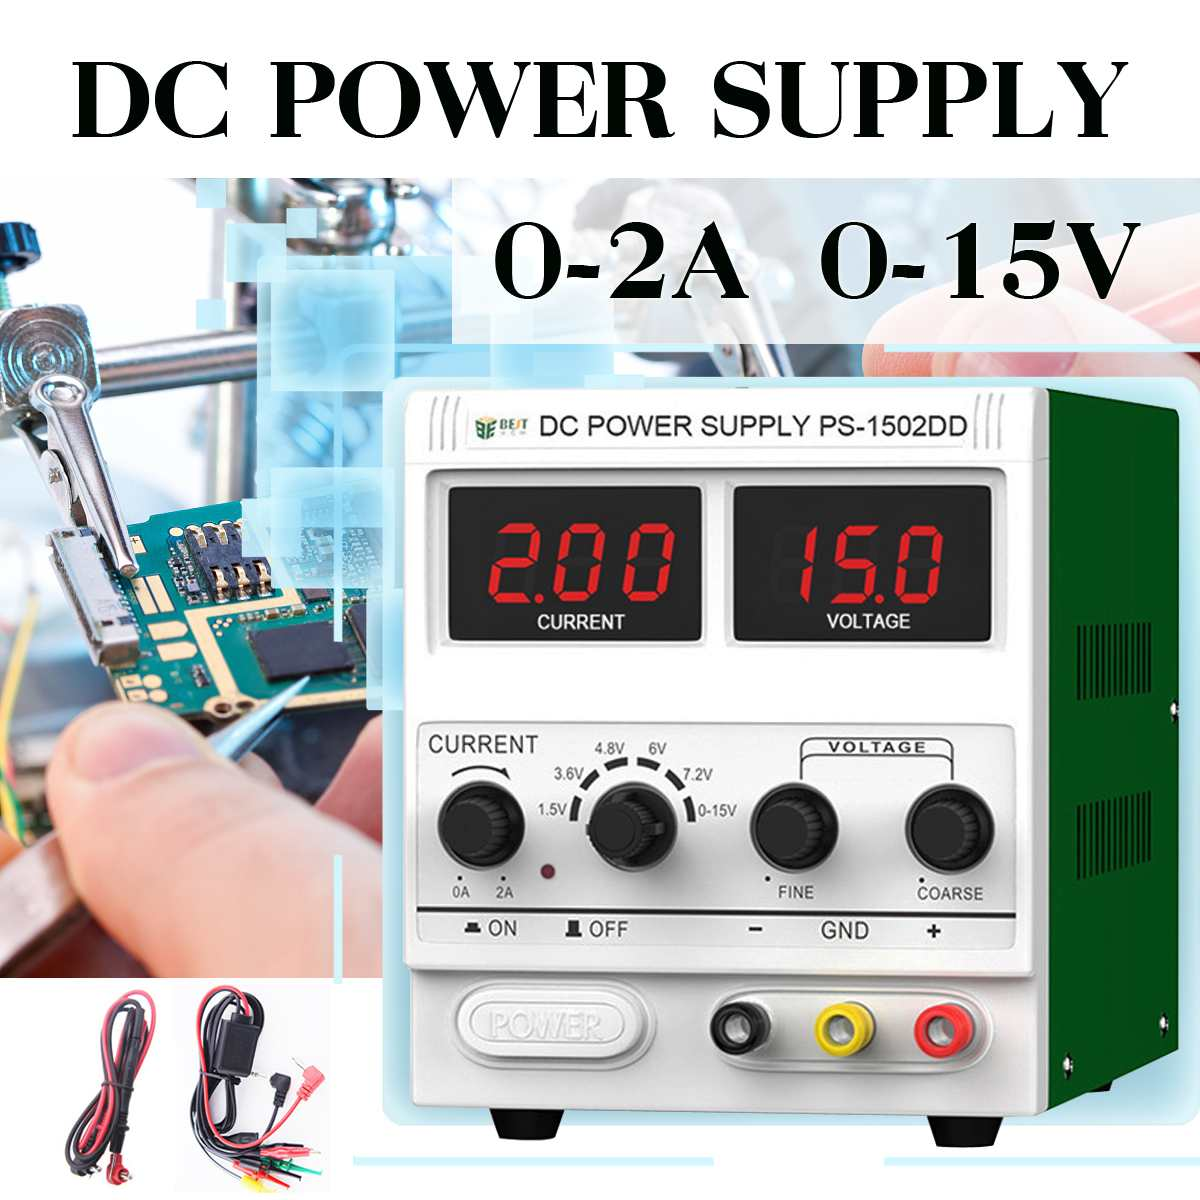 LED Digital Switching DC Power Supply Voltage Regulators Lab Repair Tool Adjustable <font><b>1502D</b></font>+ 110/220V Power Source image